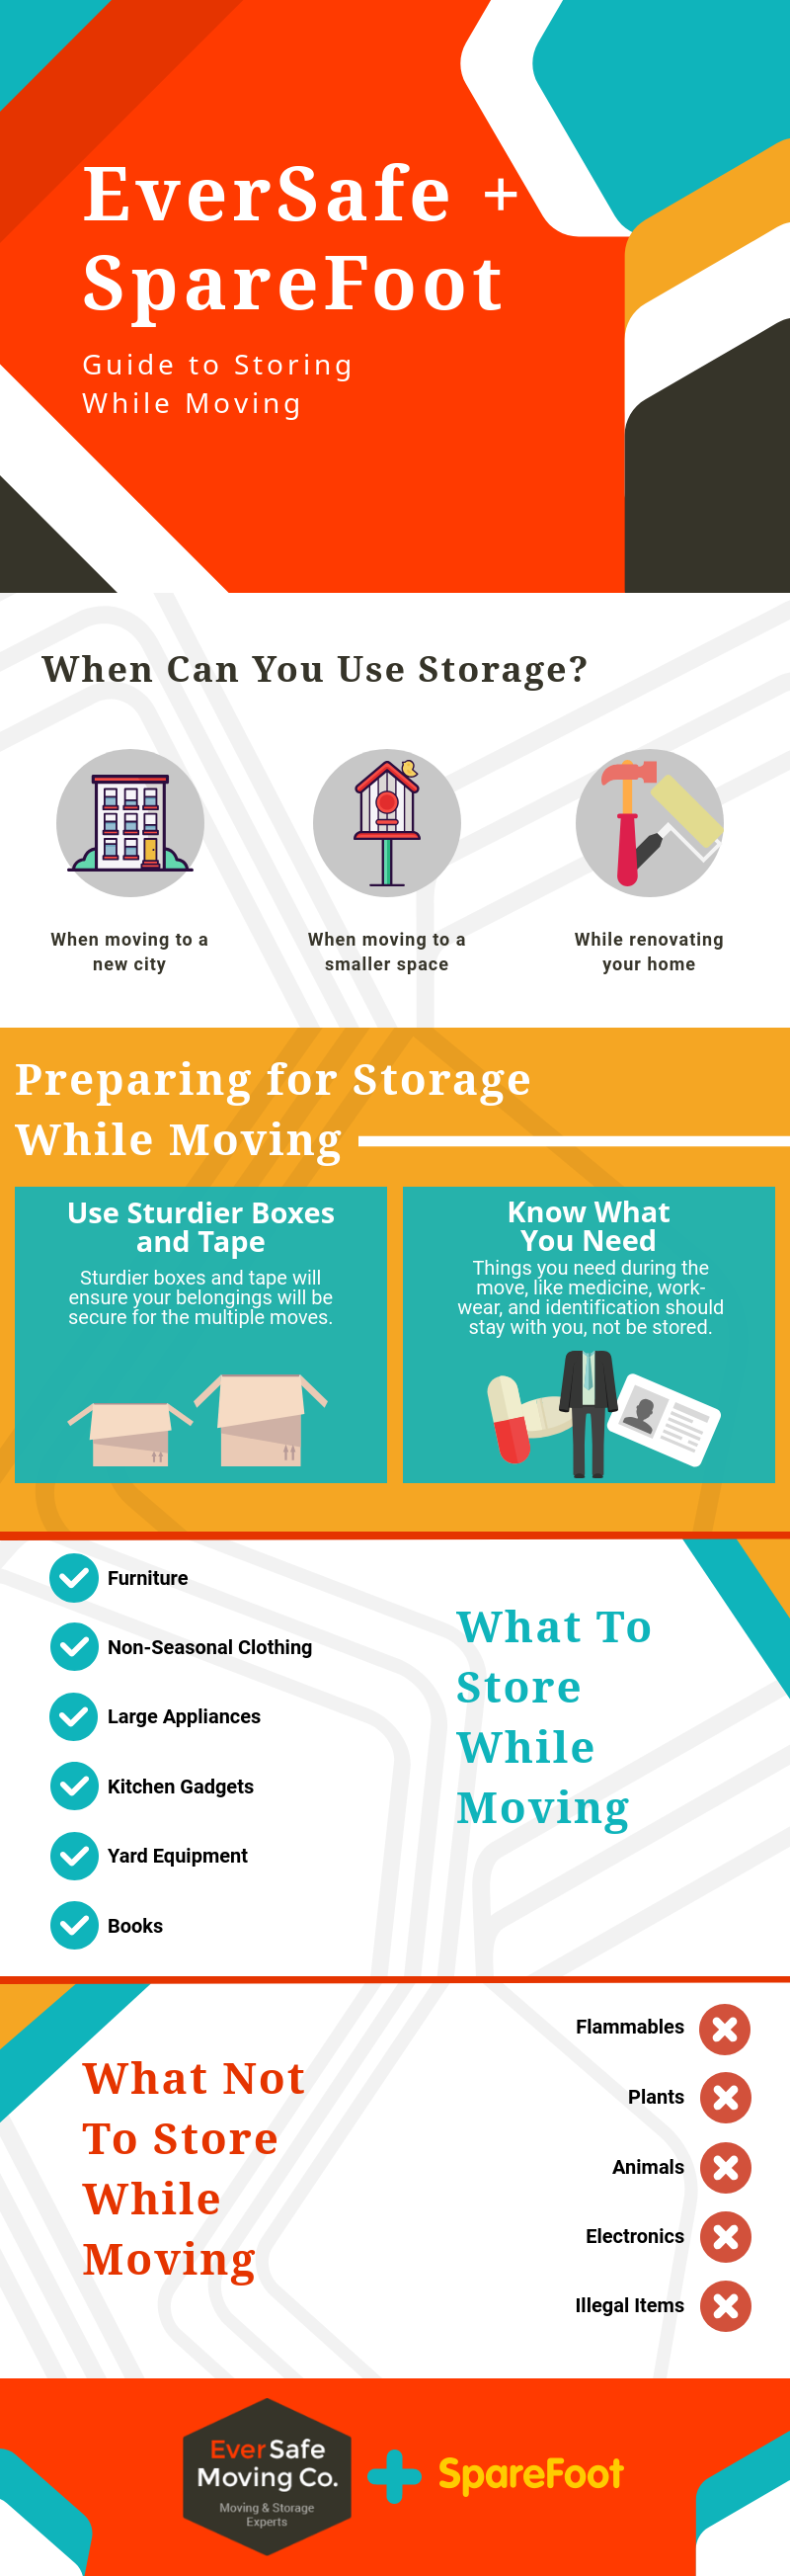 Downloadable Infographic Showing How to Store Your Belongings While Moving